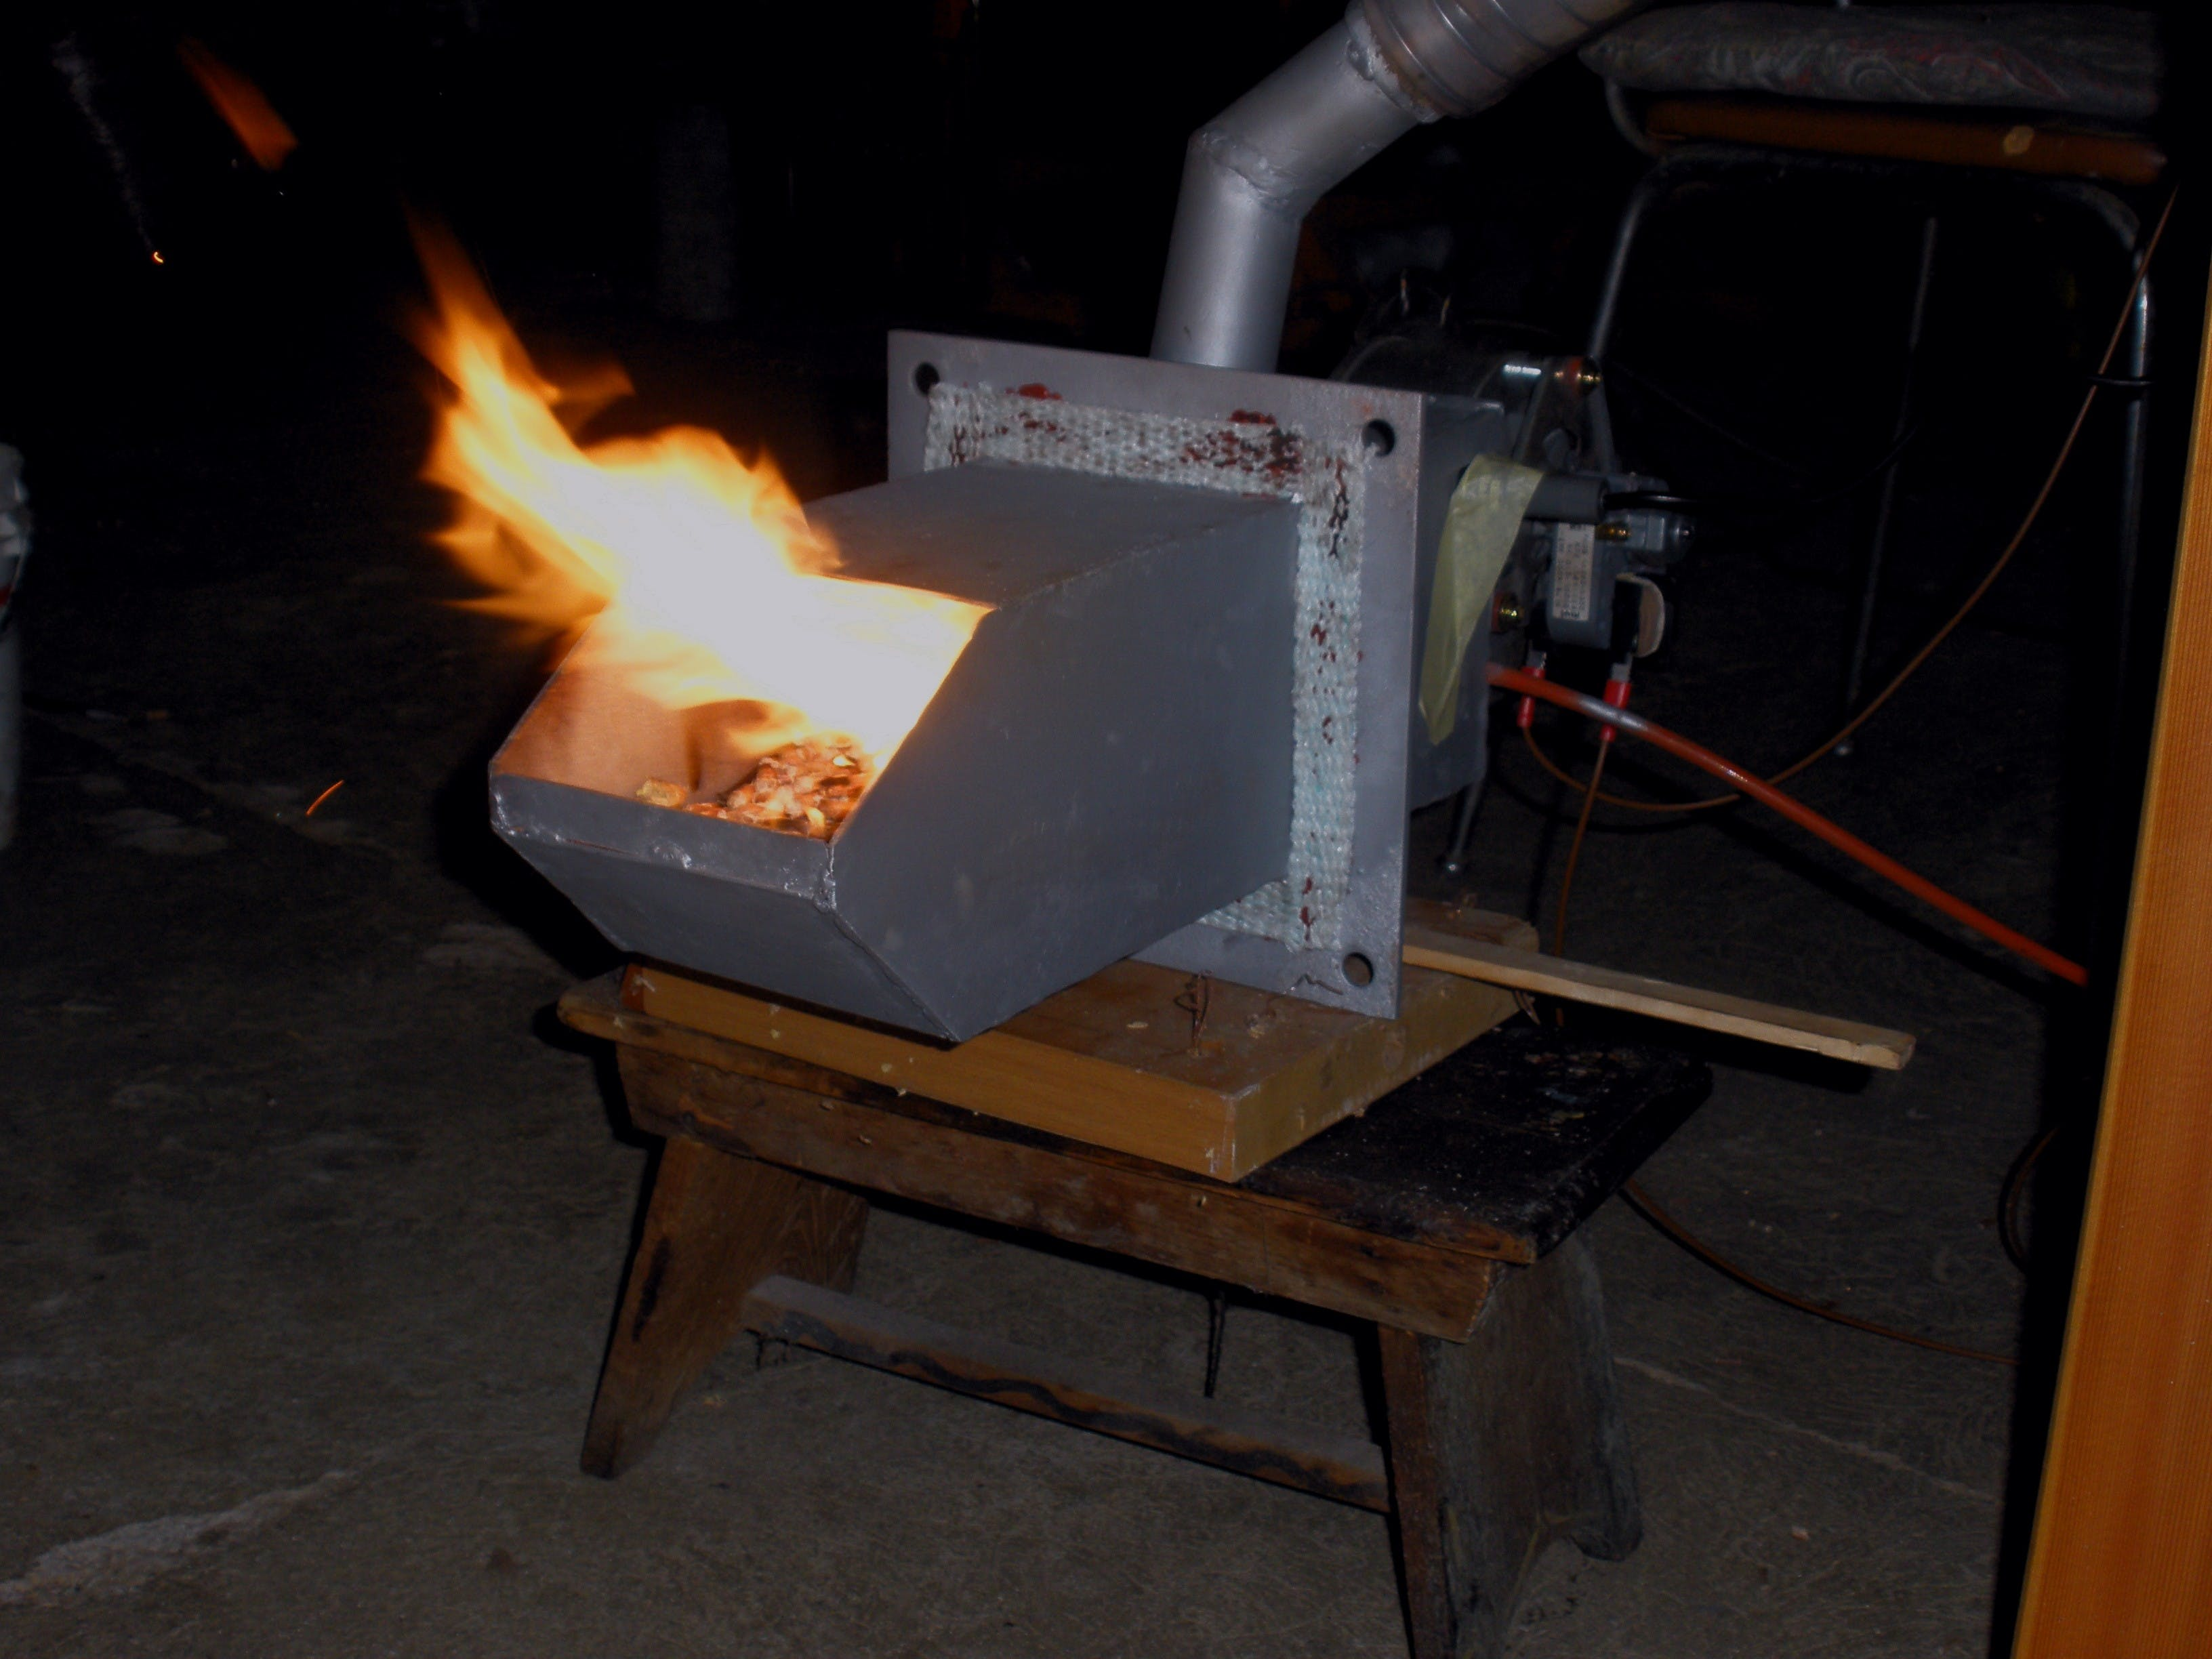 Arduino-Powered Pellet Boiler